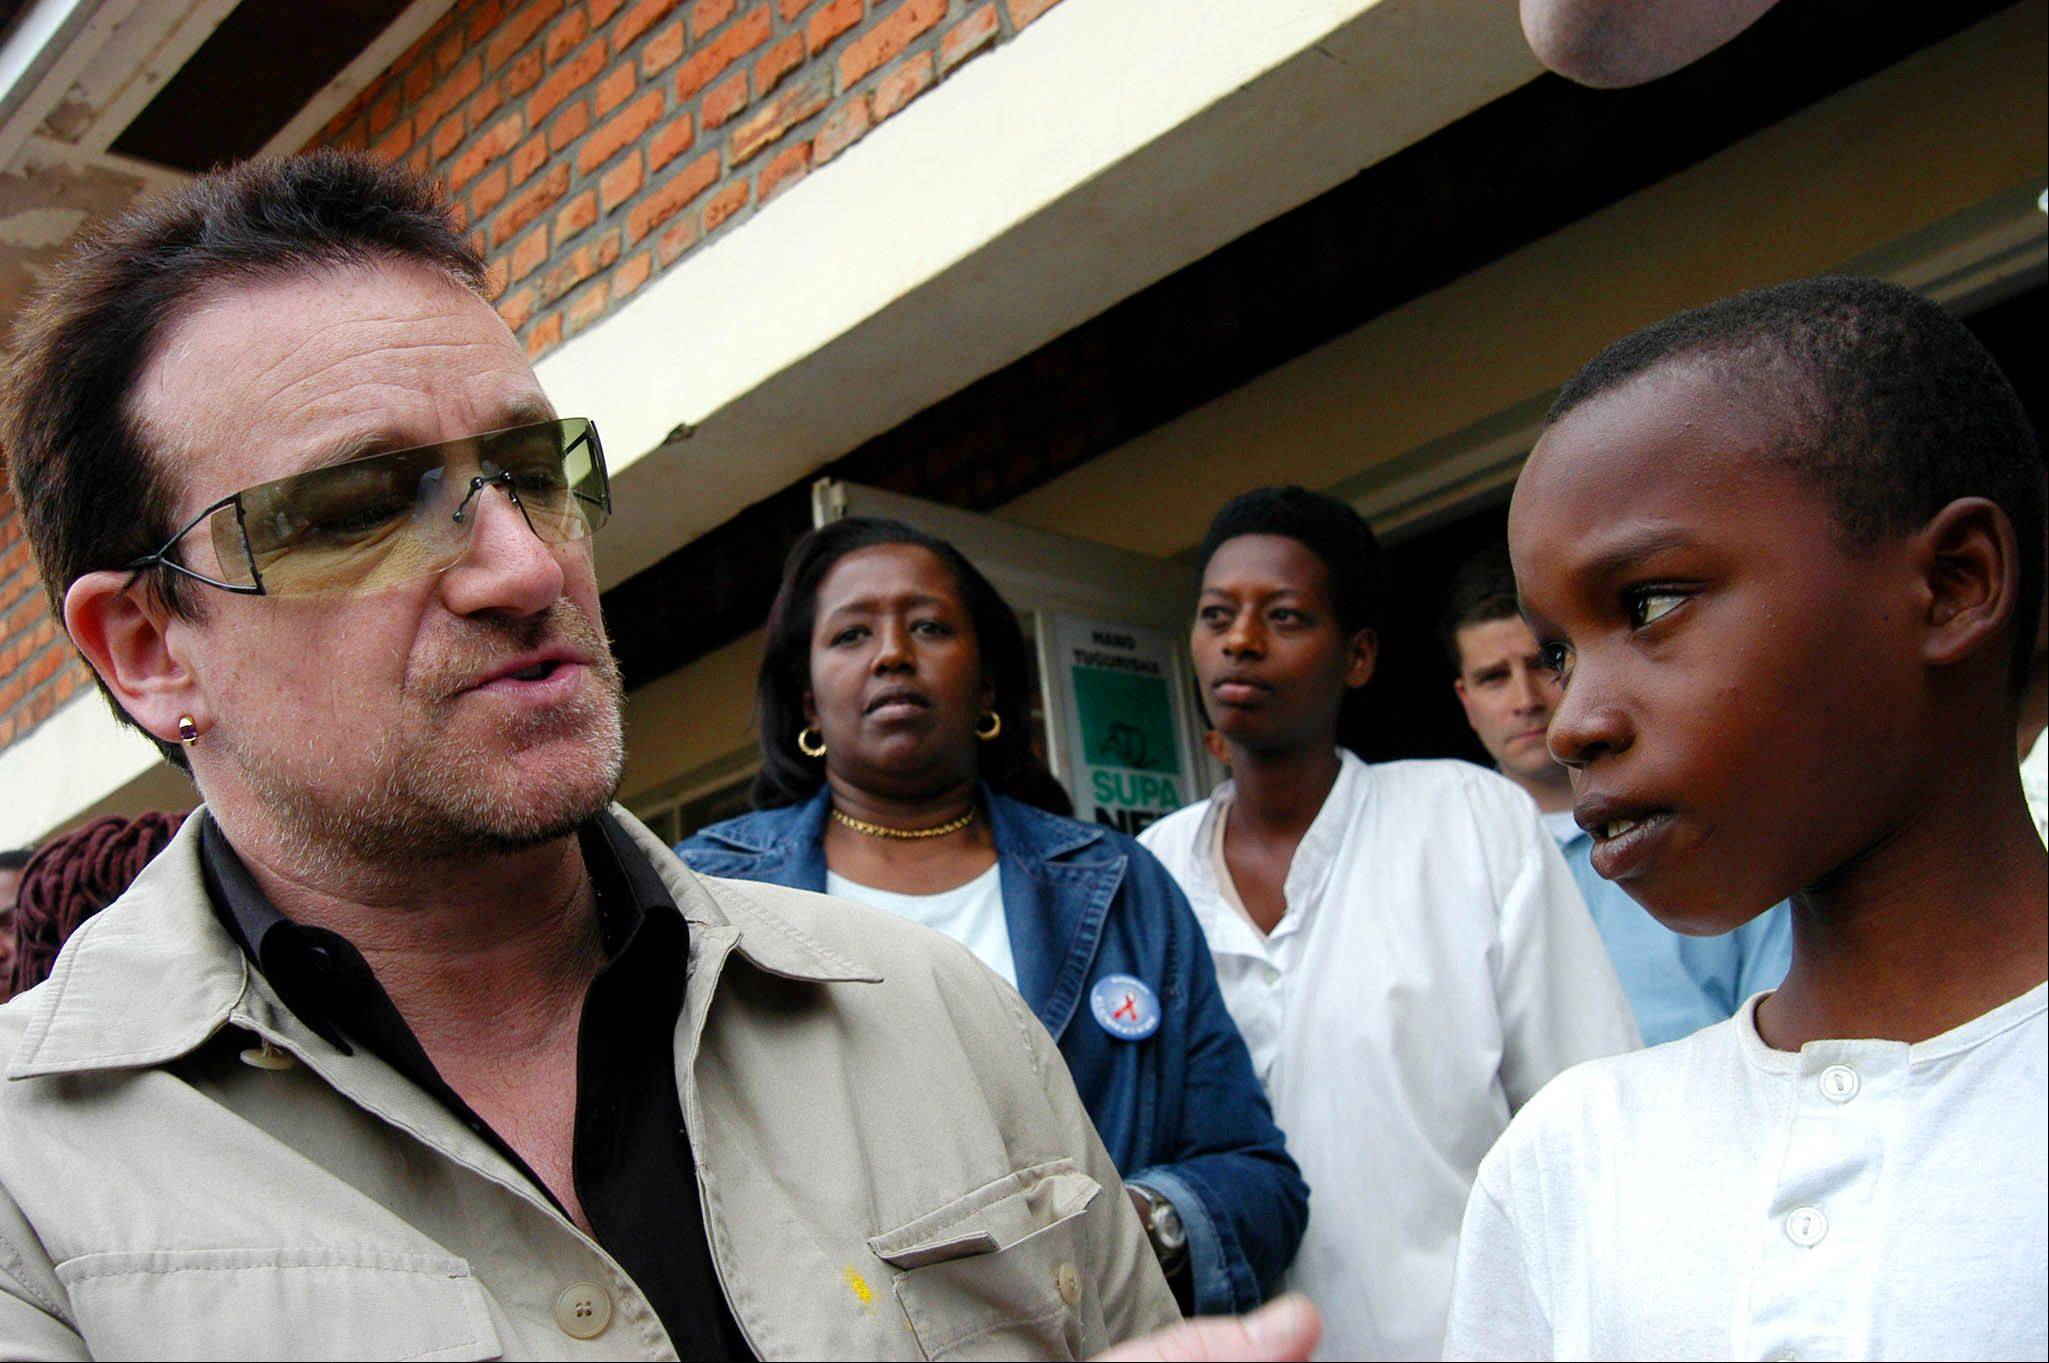 This is a Thursday May 18, 2006 file photo of Irish rock star Bono meets an unidentified boy suffering from hearth problems at a health center in Mayange, Rwanda. Bono was touring some African nations to support the Global Fund to fight AIDS, malaria and tuberculosis. A nearly $22 billion development fund backed by celebrities and hailed as an alternative to the bureaucracy of the United Nations sees as much as one-third to two-thirds of some grants eaten up by corruption, The Associated Press has learned.